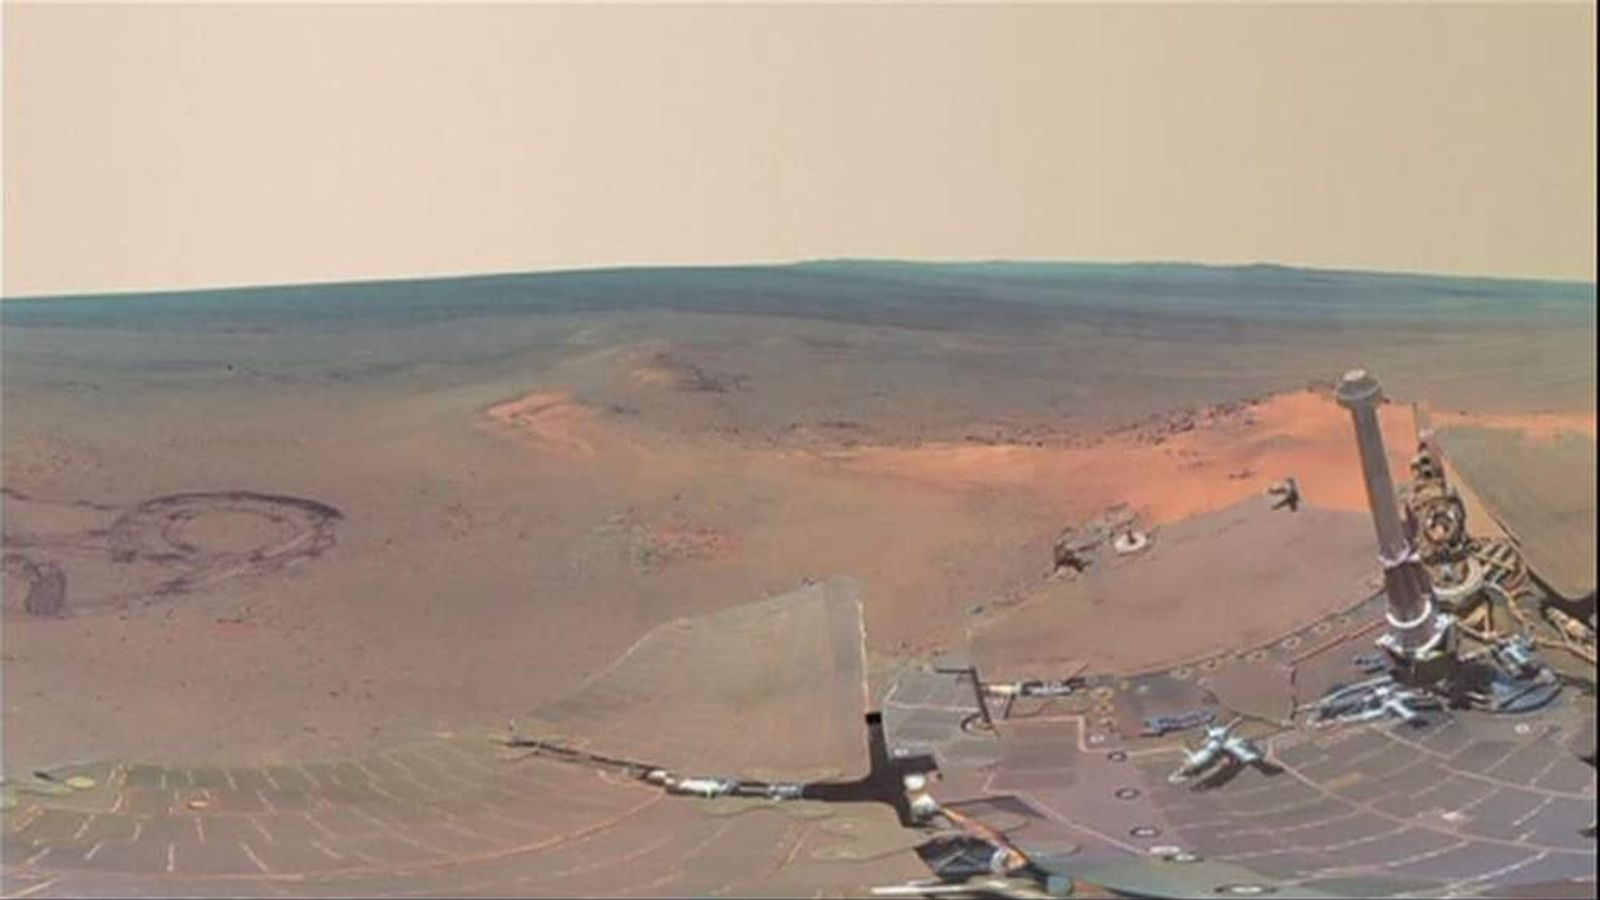 The images released by Nasa were taken by the Mars Exploration Rover, Opportunity.